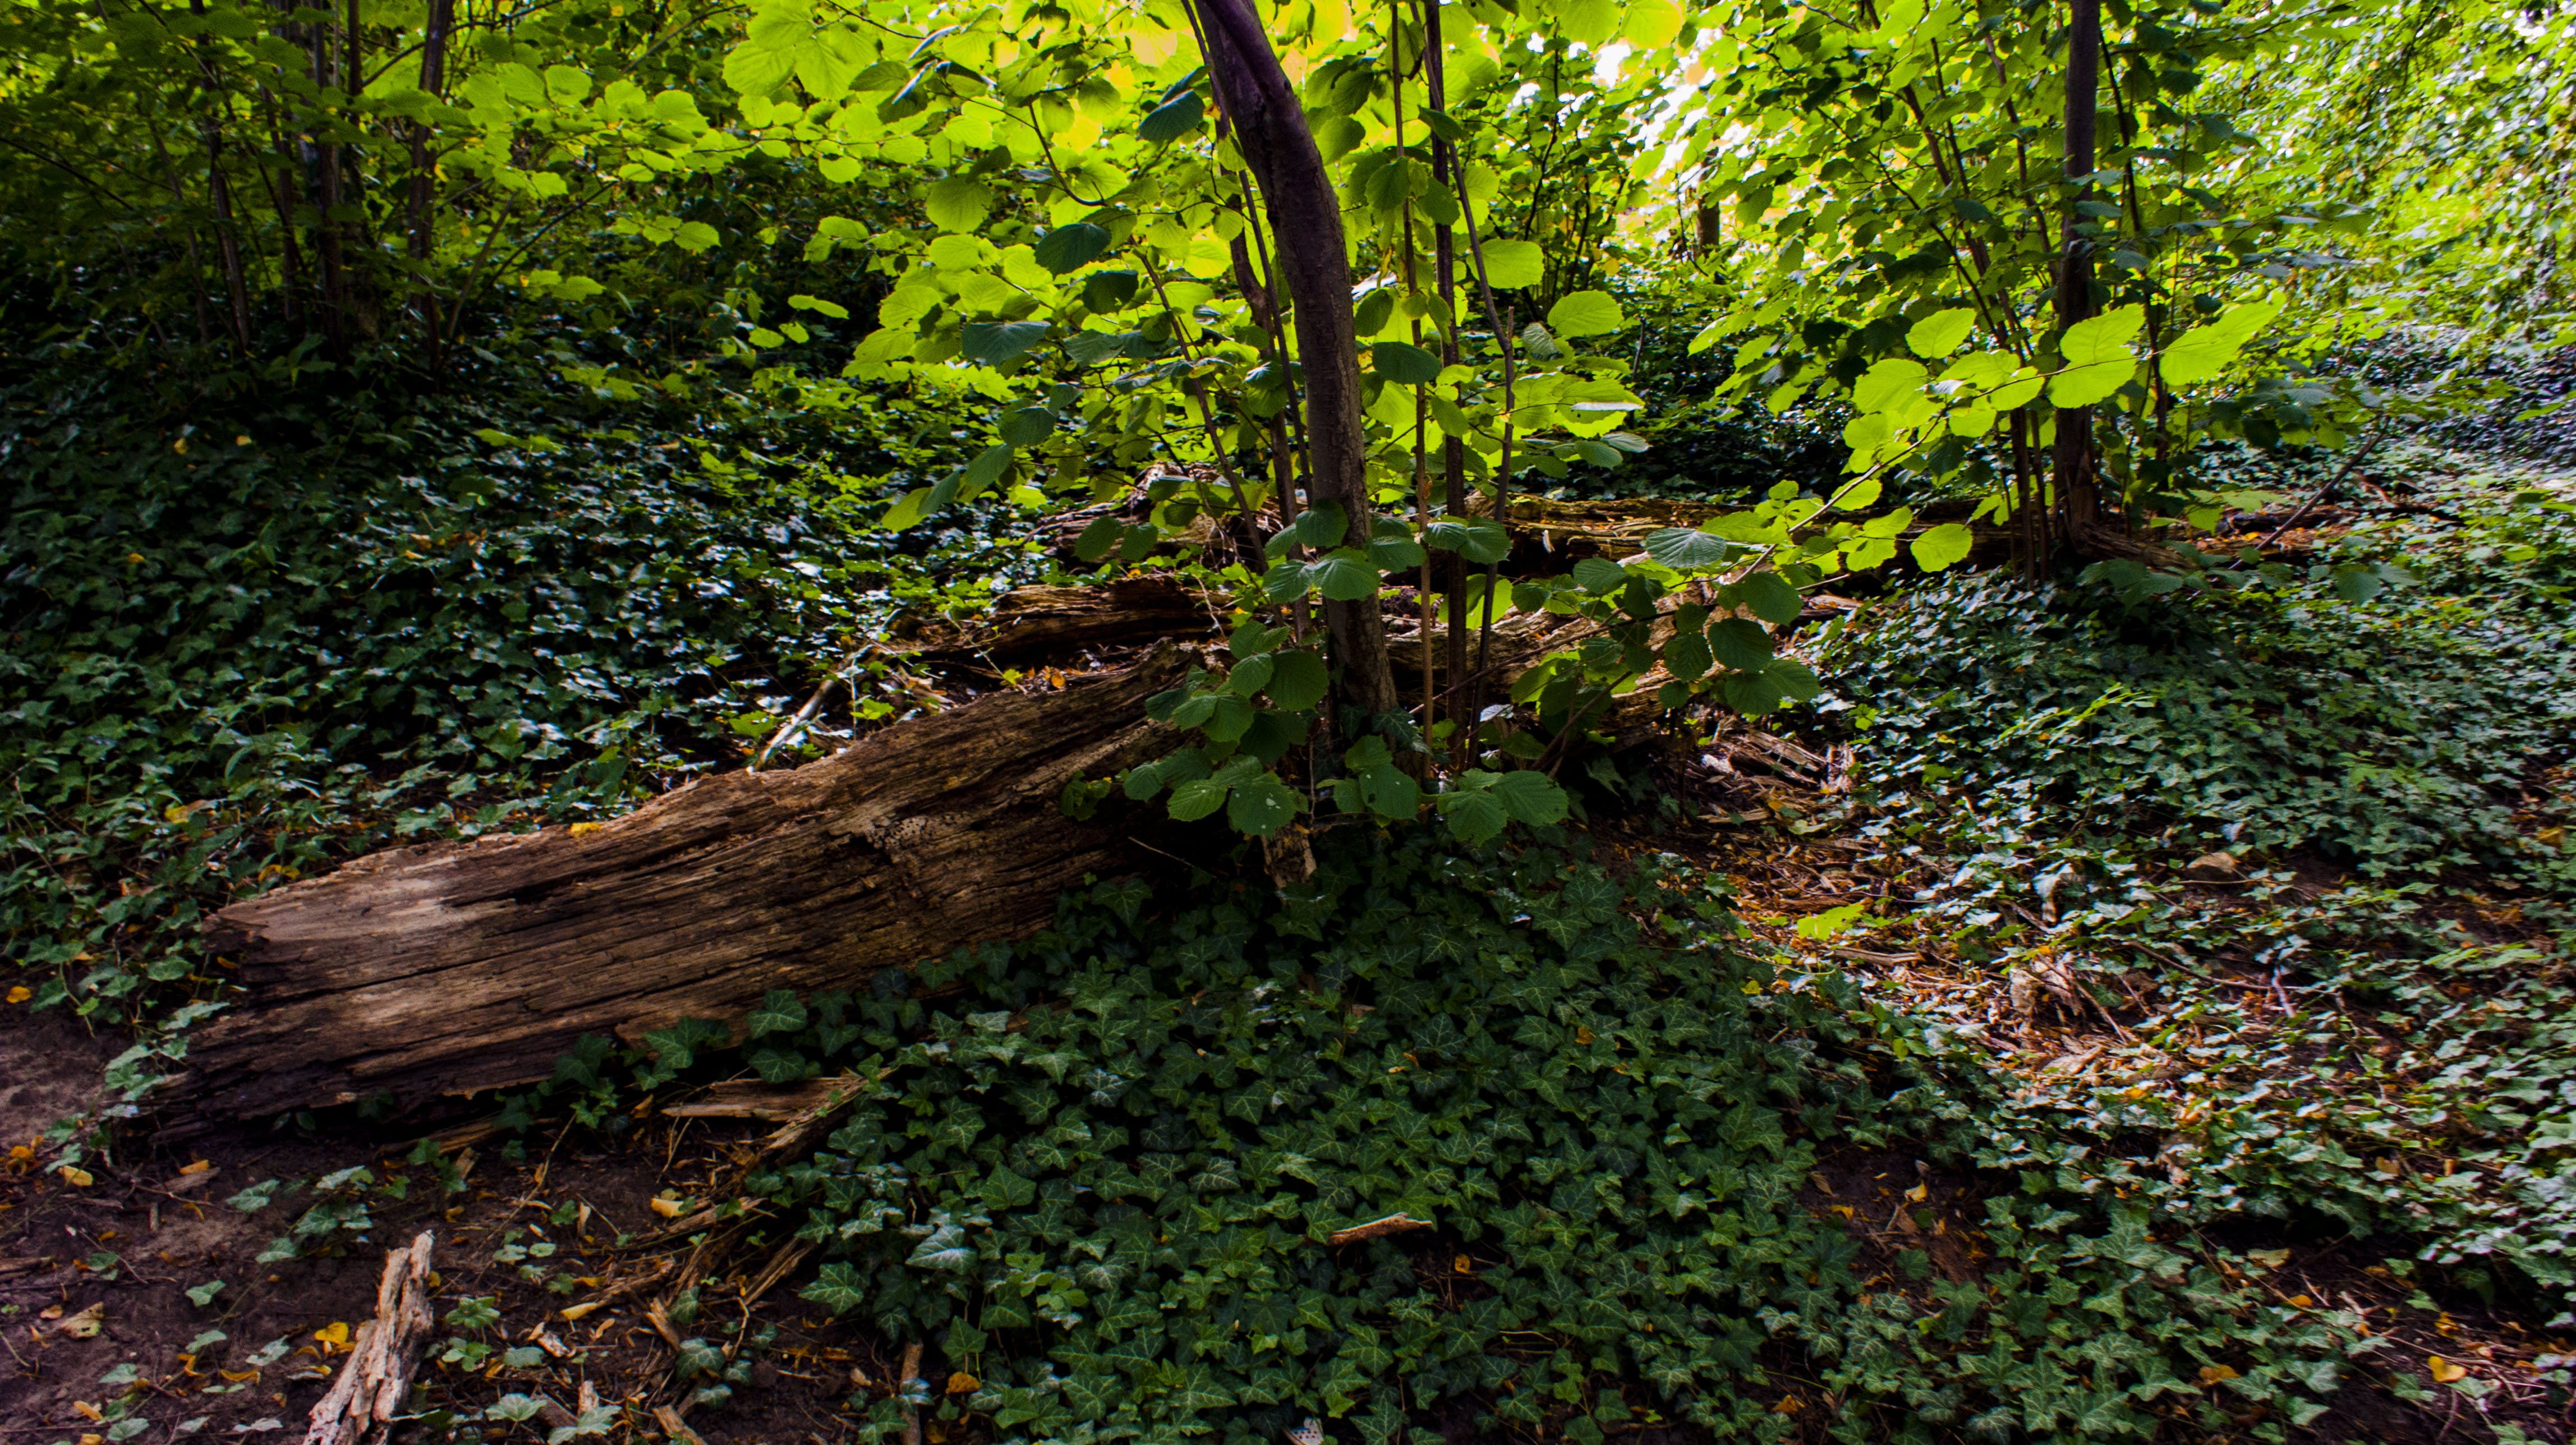 Free stock photo of forest, forest floor, ivy, tree